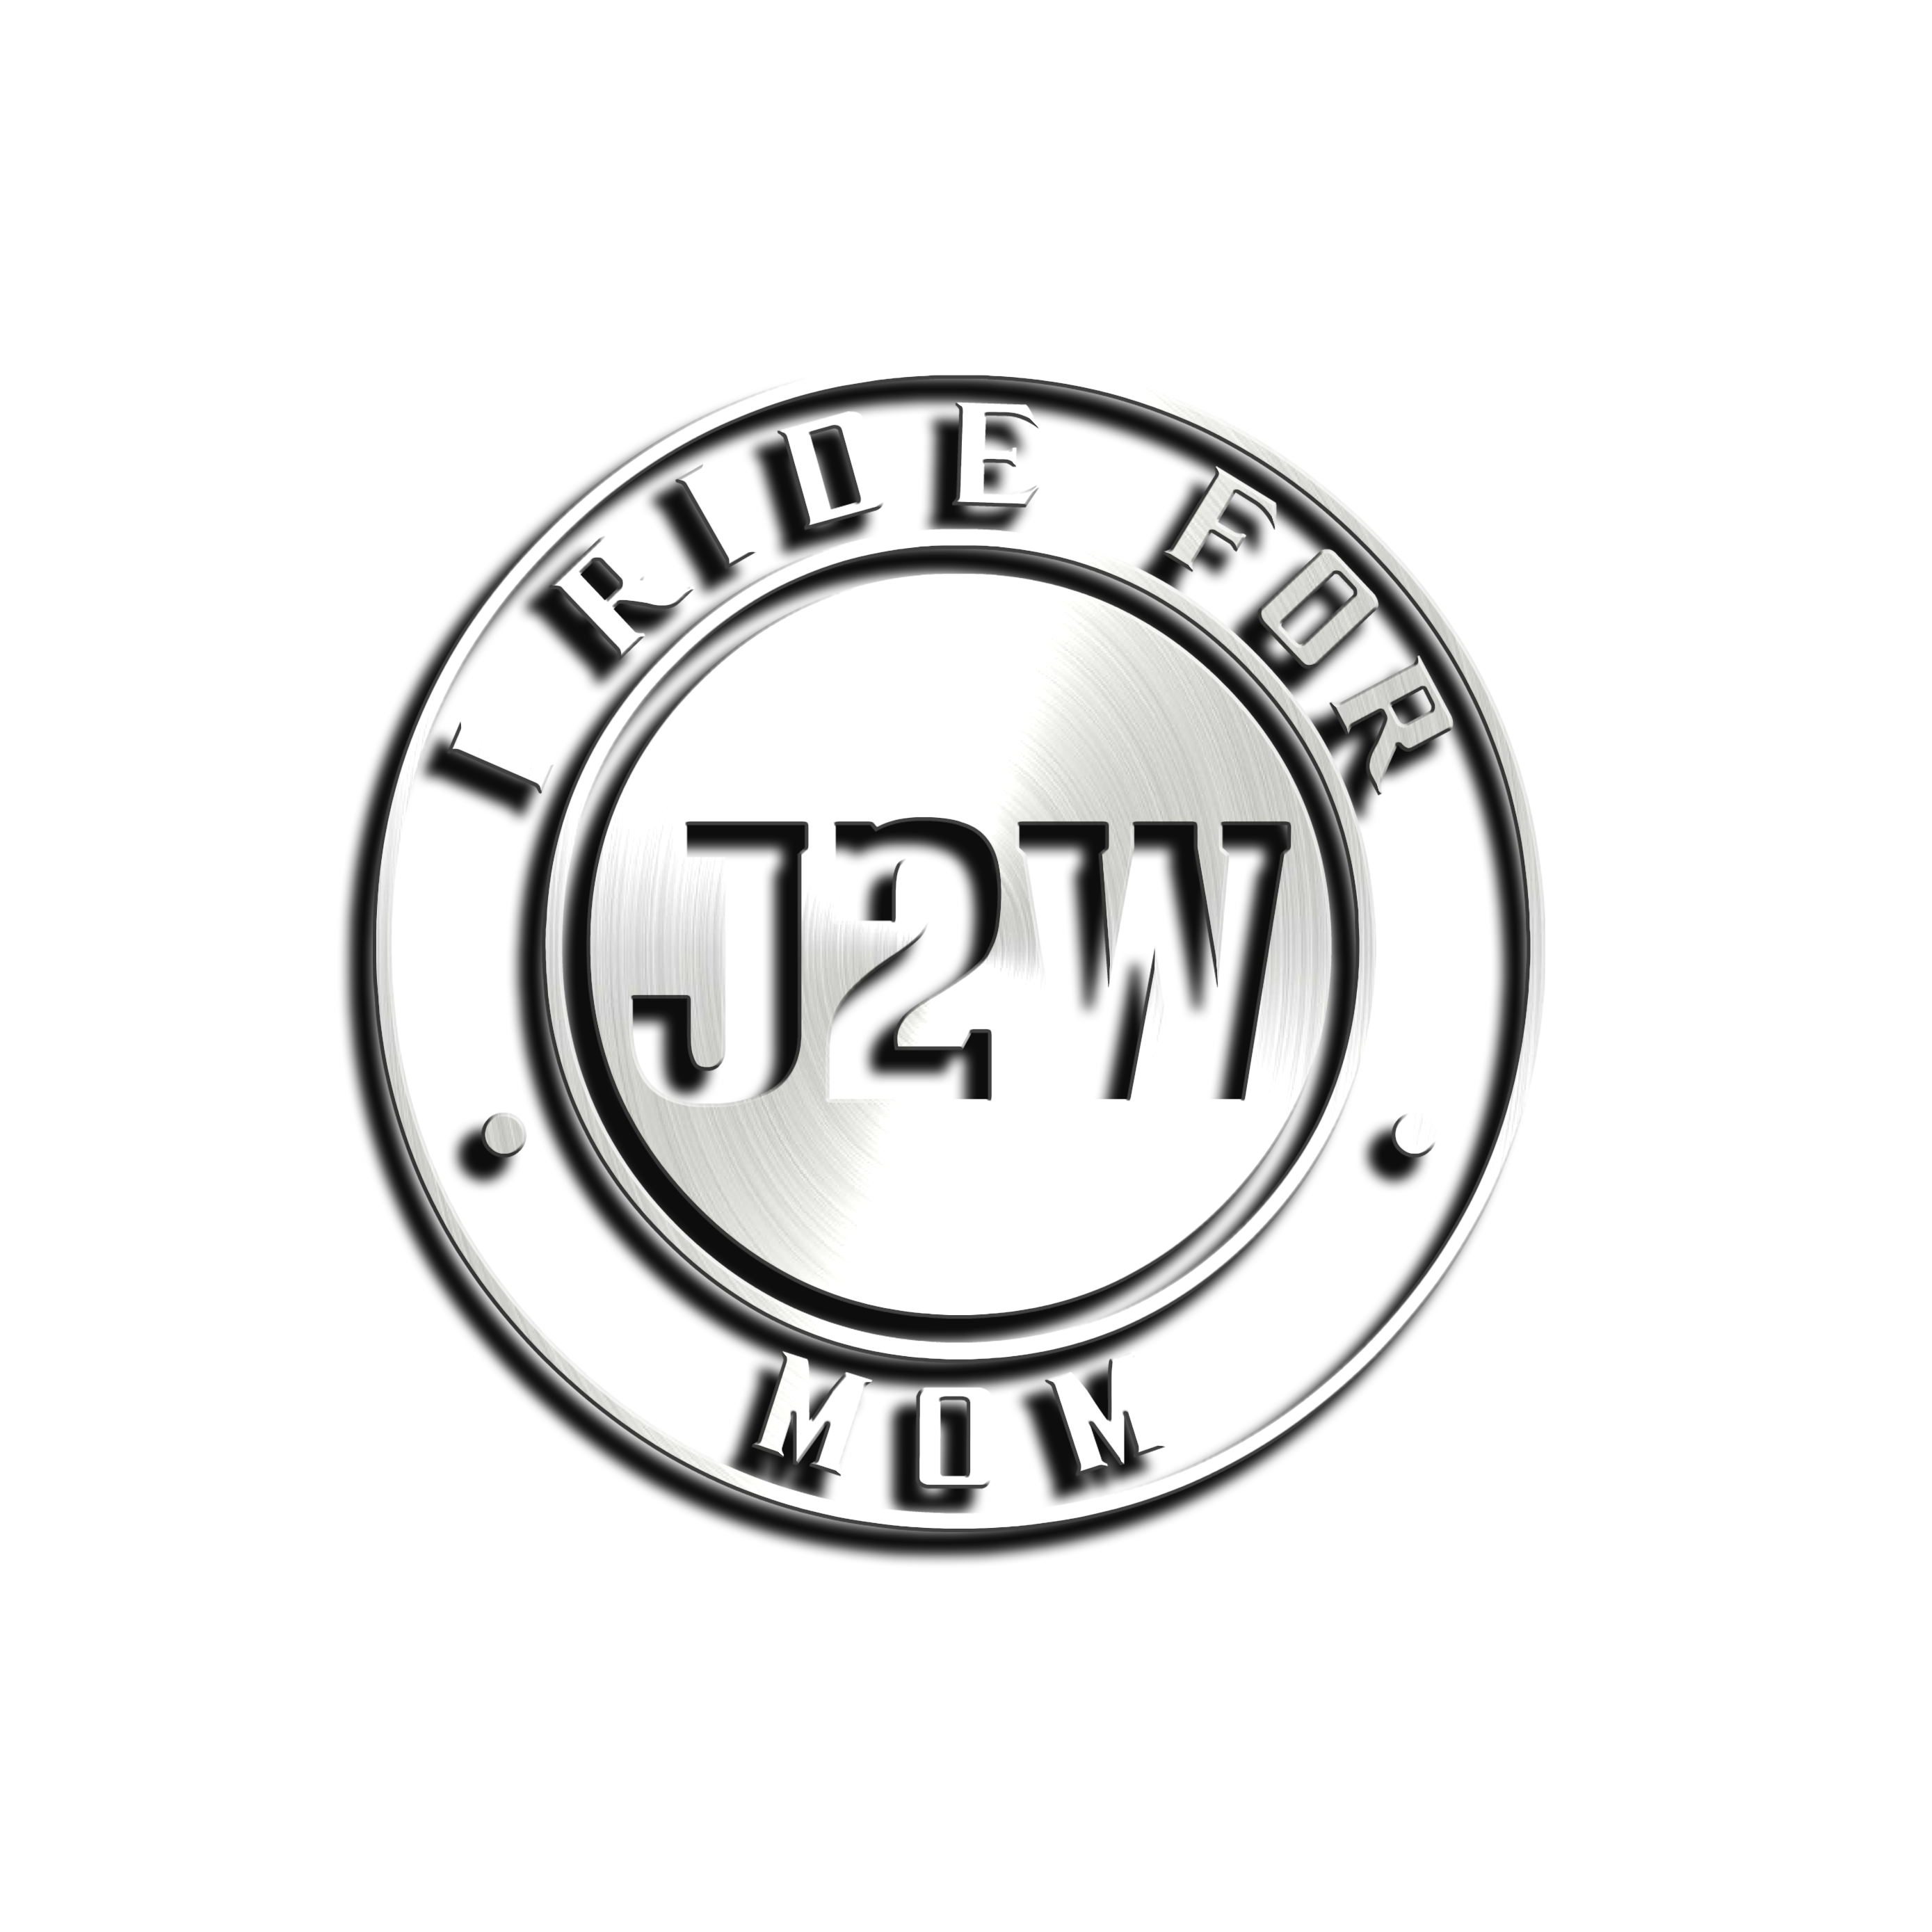 Continued work on J2W logo design-January 2017